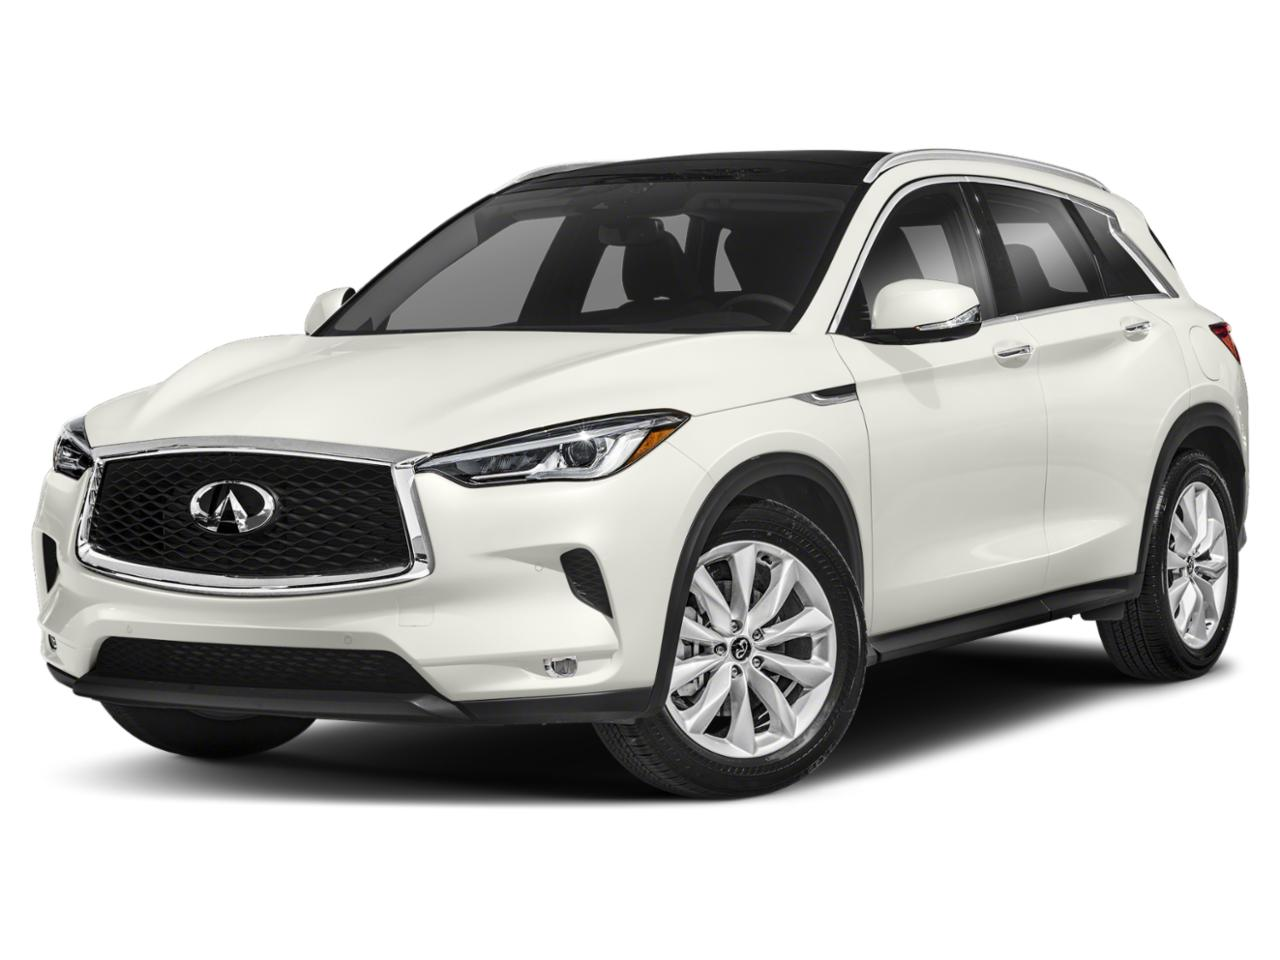 2019 INFINITI QX50 Vehicle Photo in Mission, TX 78572